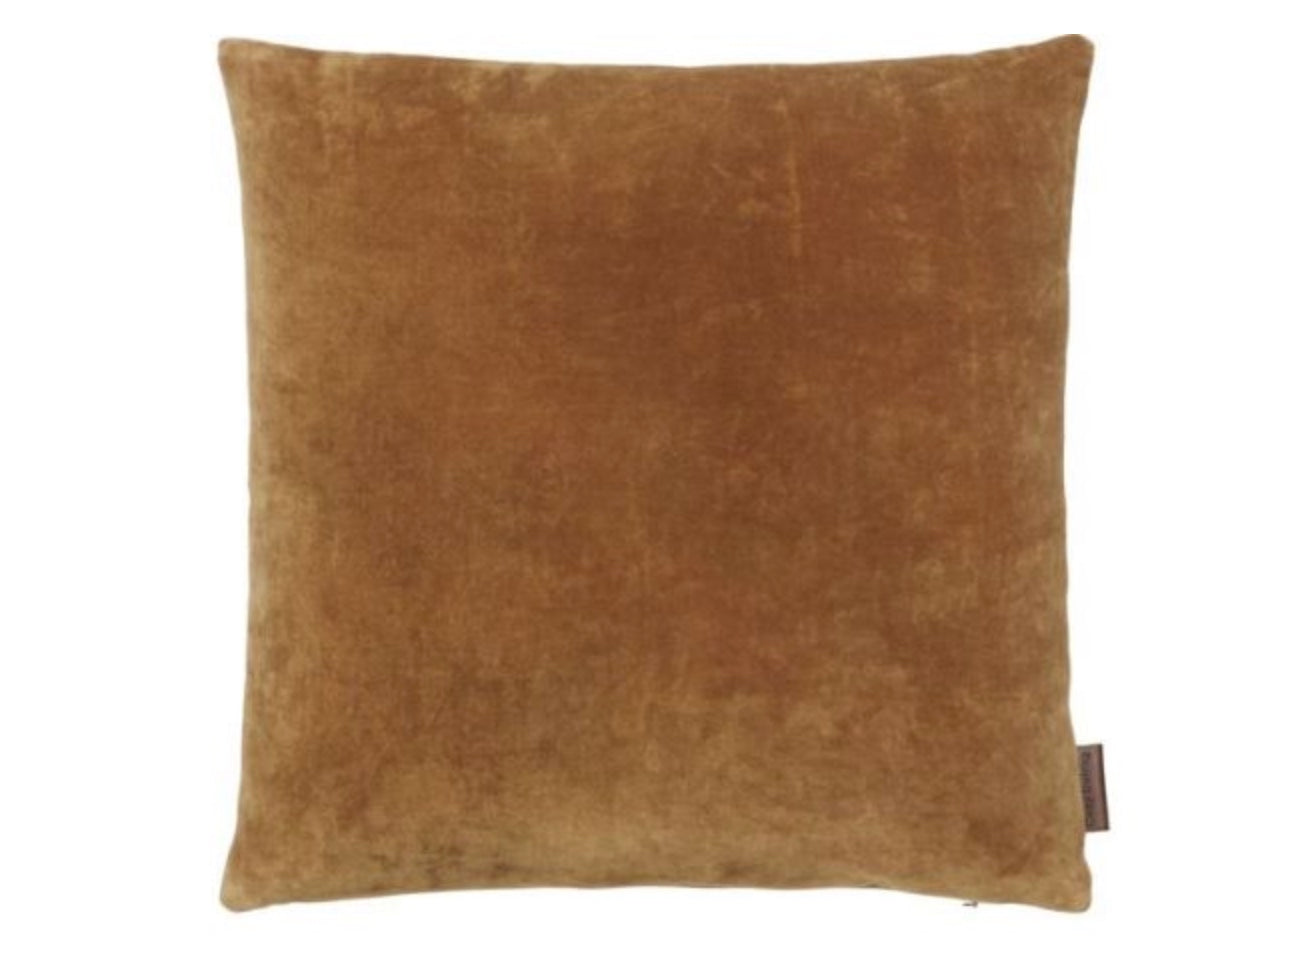 Subscription_OMNI_Cozy_Living_50x50_Velvet_Orange_Pillow_Lounge_comfort_office_absorb_sound_cozy_classic_Danish_design